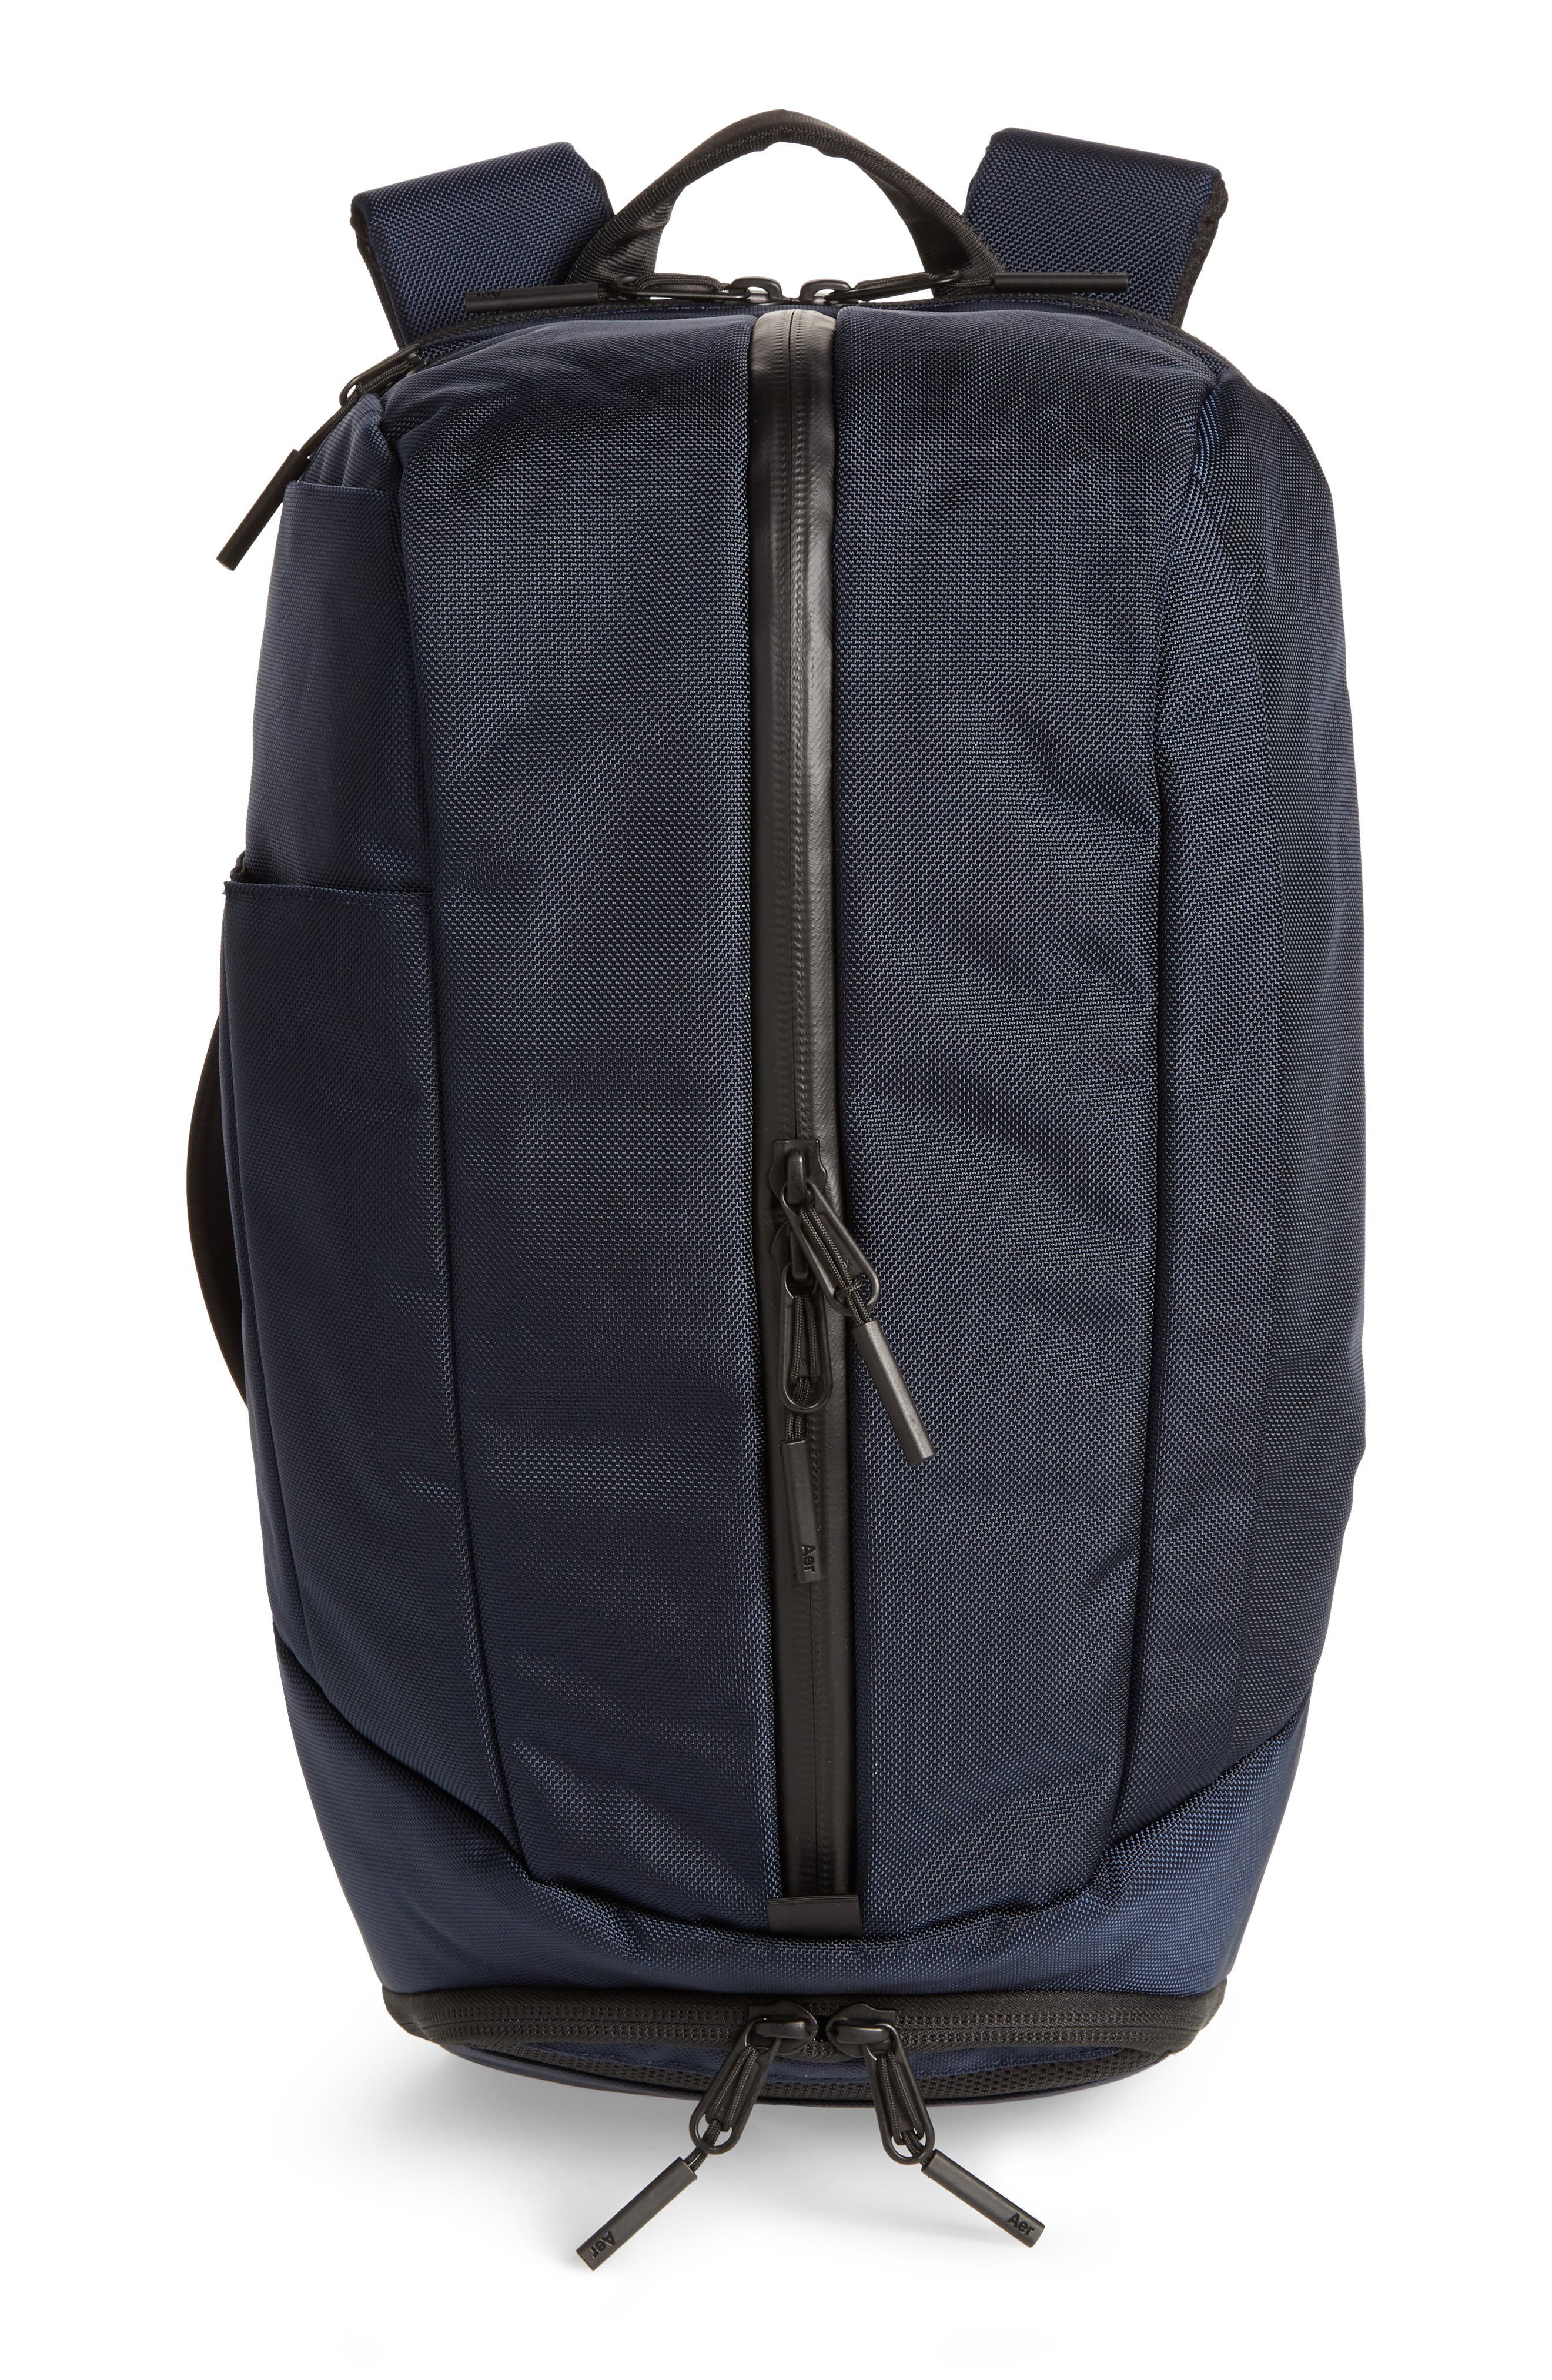 Duffel Pack 2 Convertible Backpack,                         Main,                         color, Navy